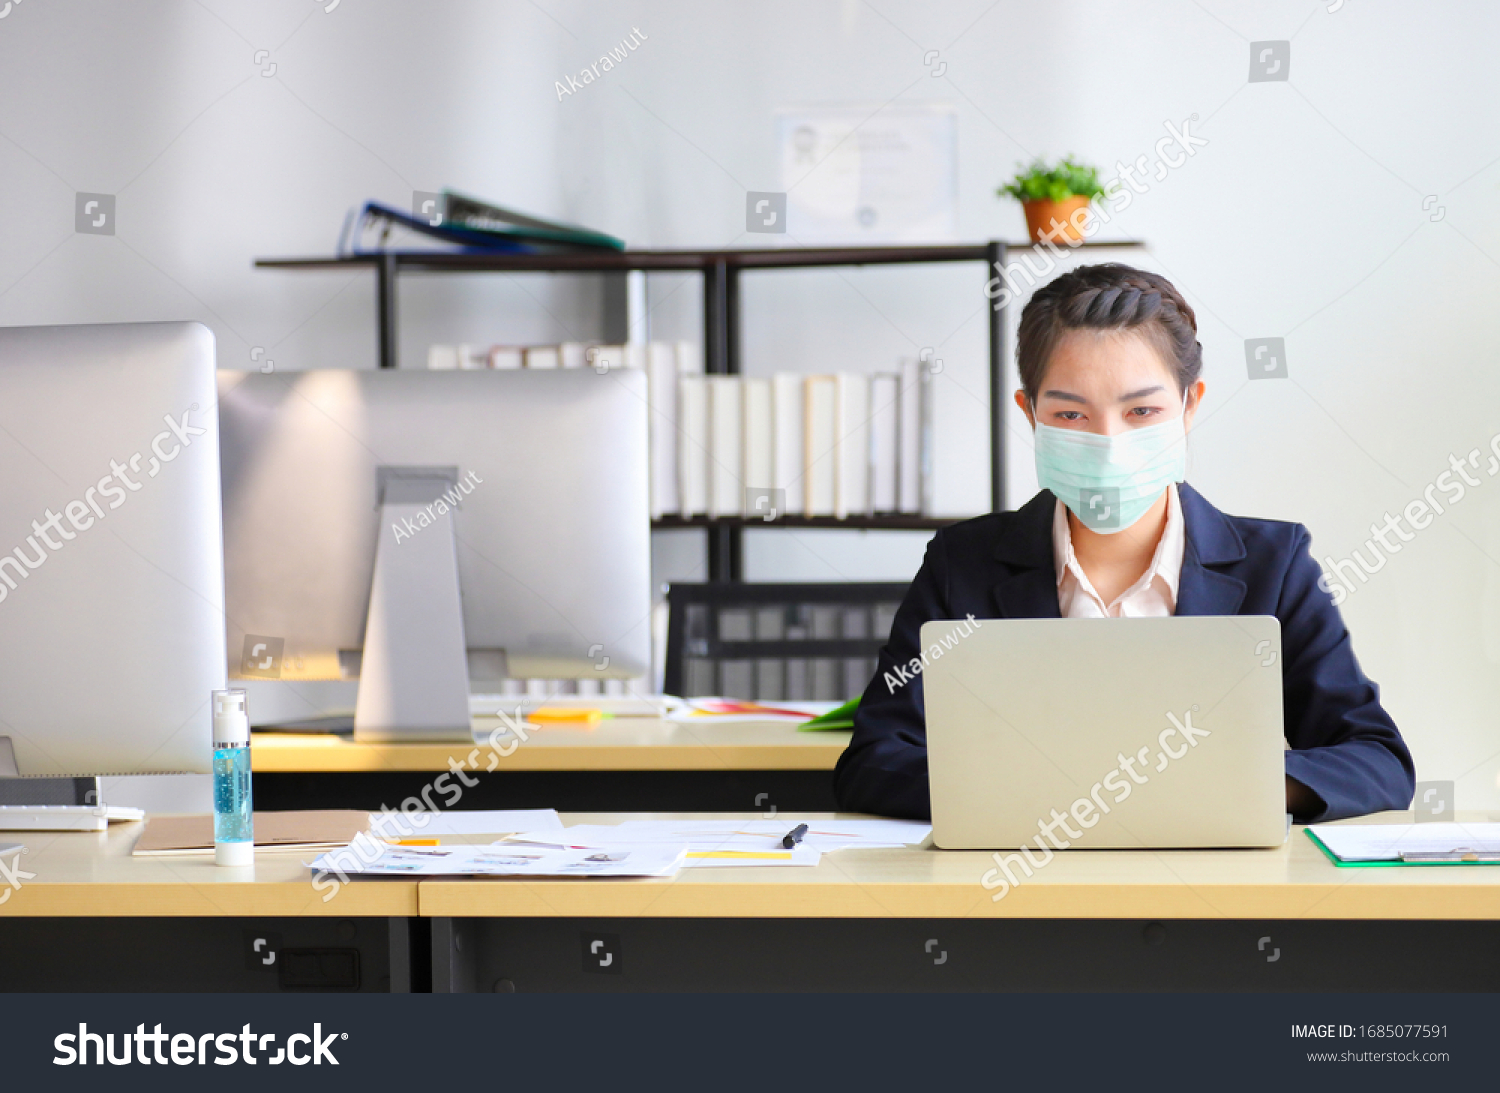 Female employee wearing medical facial mask working alone as of social distancing policy in the business office during new normal change after coronavirus or post covid-19 outbreak pandemic situation #1685077591